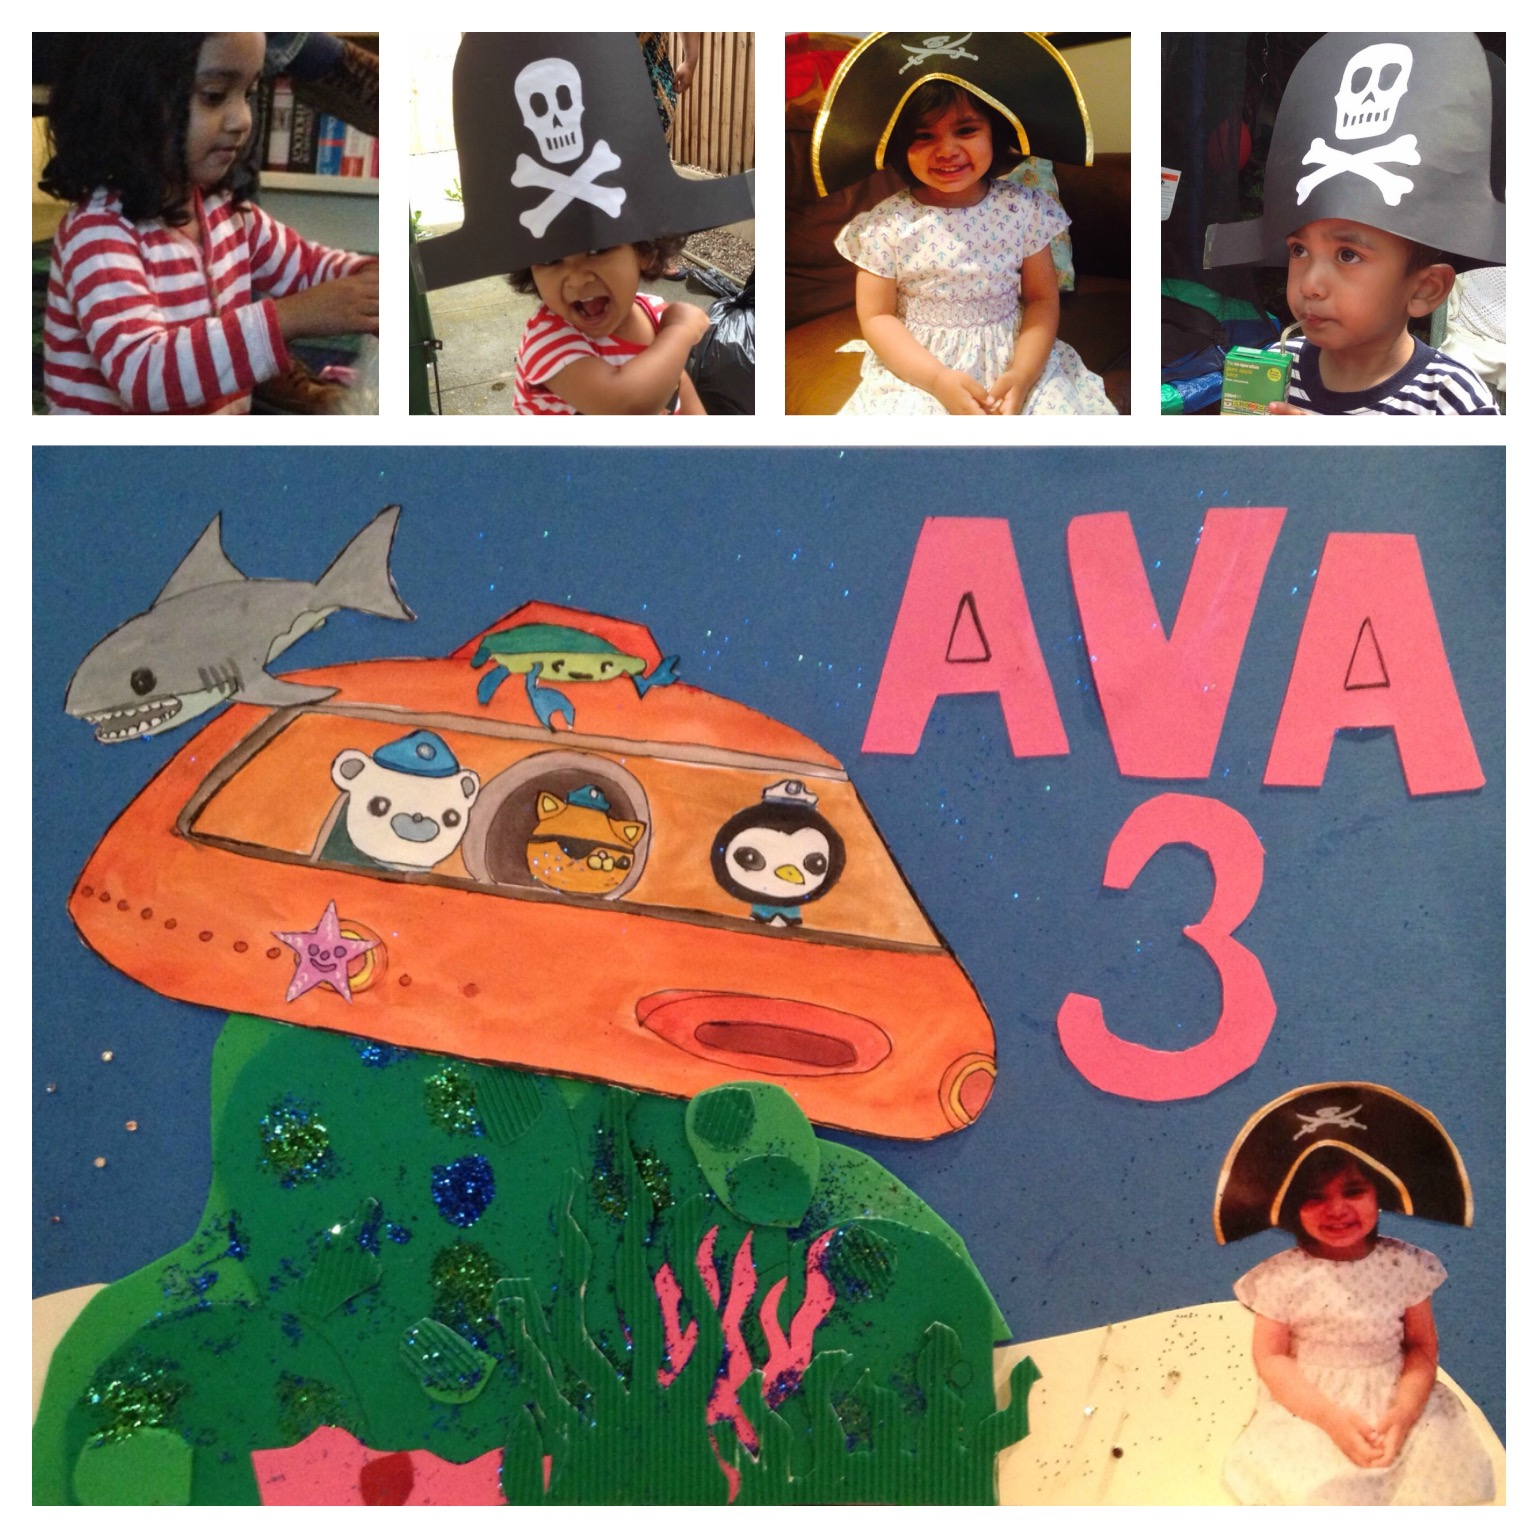 Ava third birthday